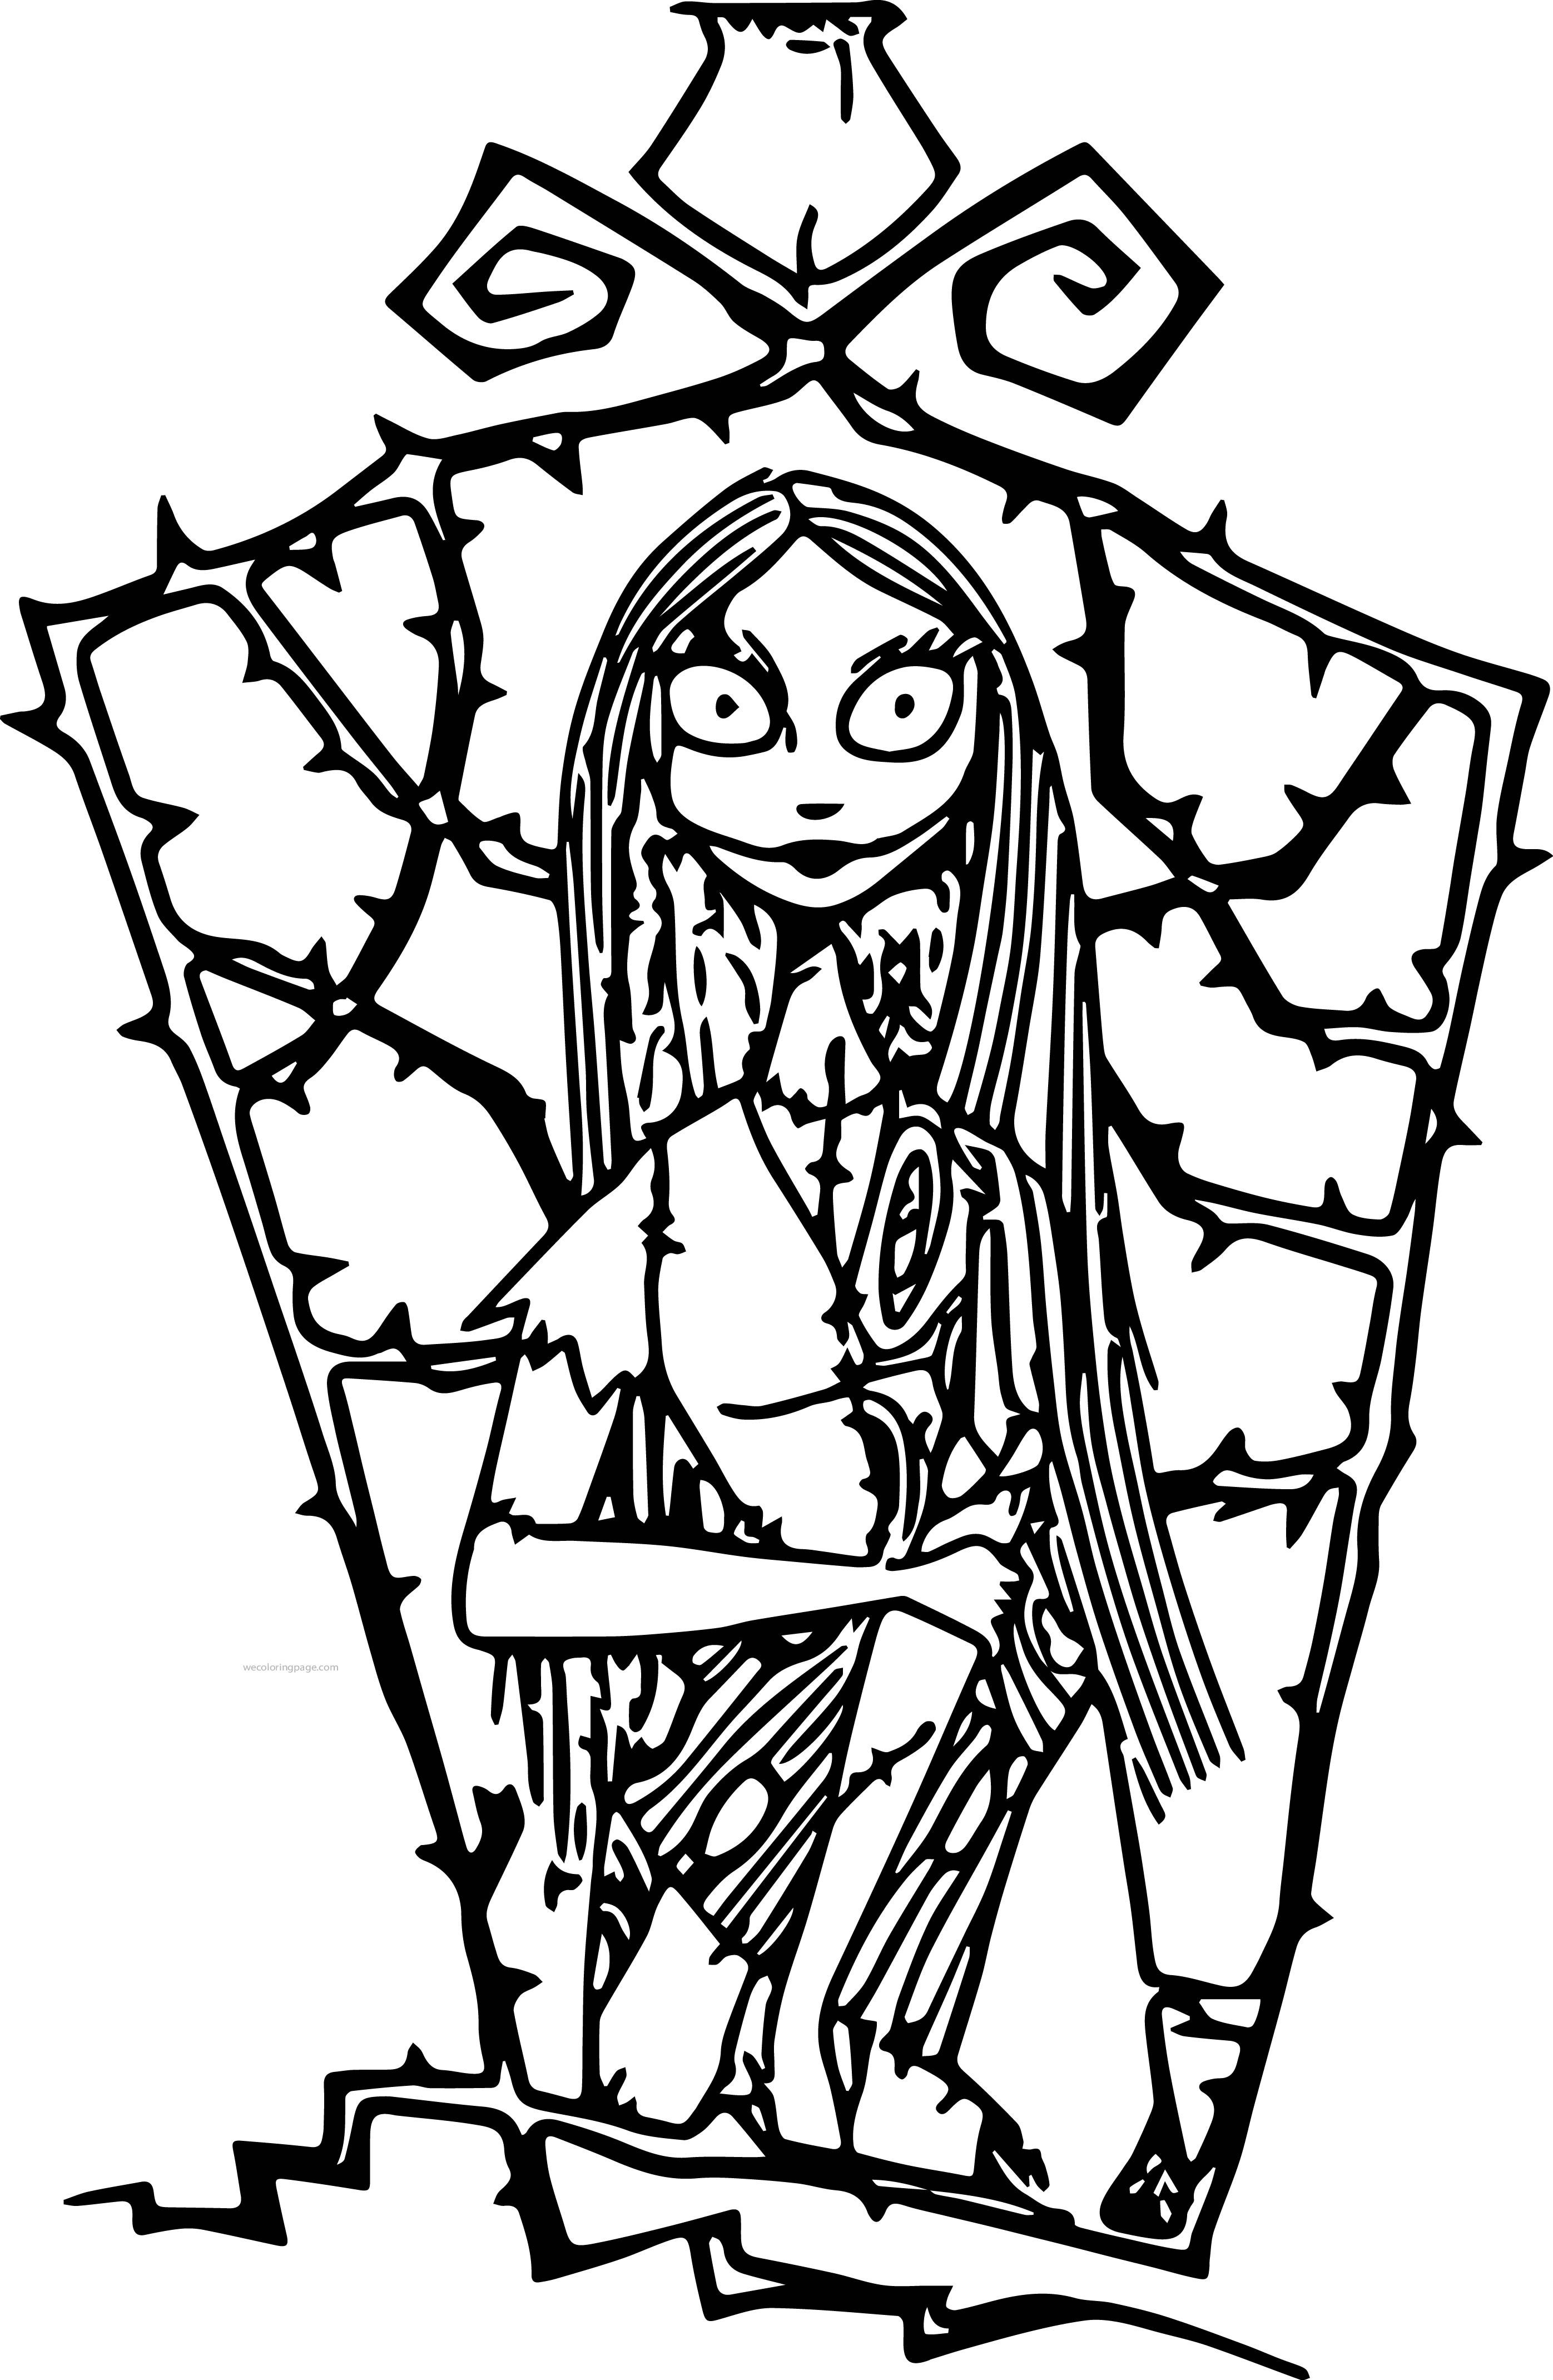 the nightmare before christmas coloring pages - Nightmare Before Christmas Coloring Book